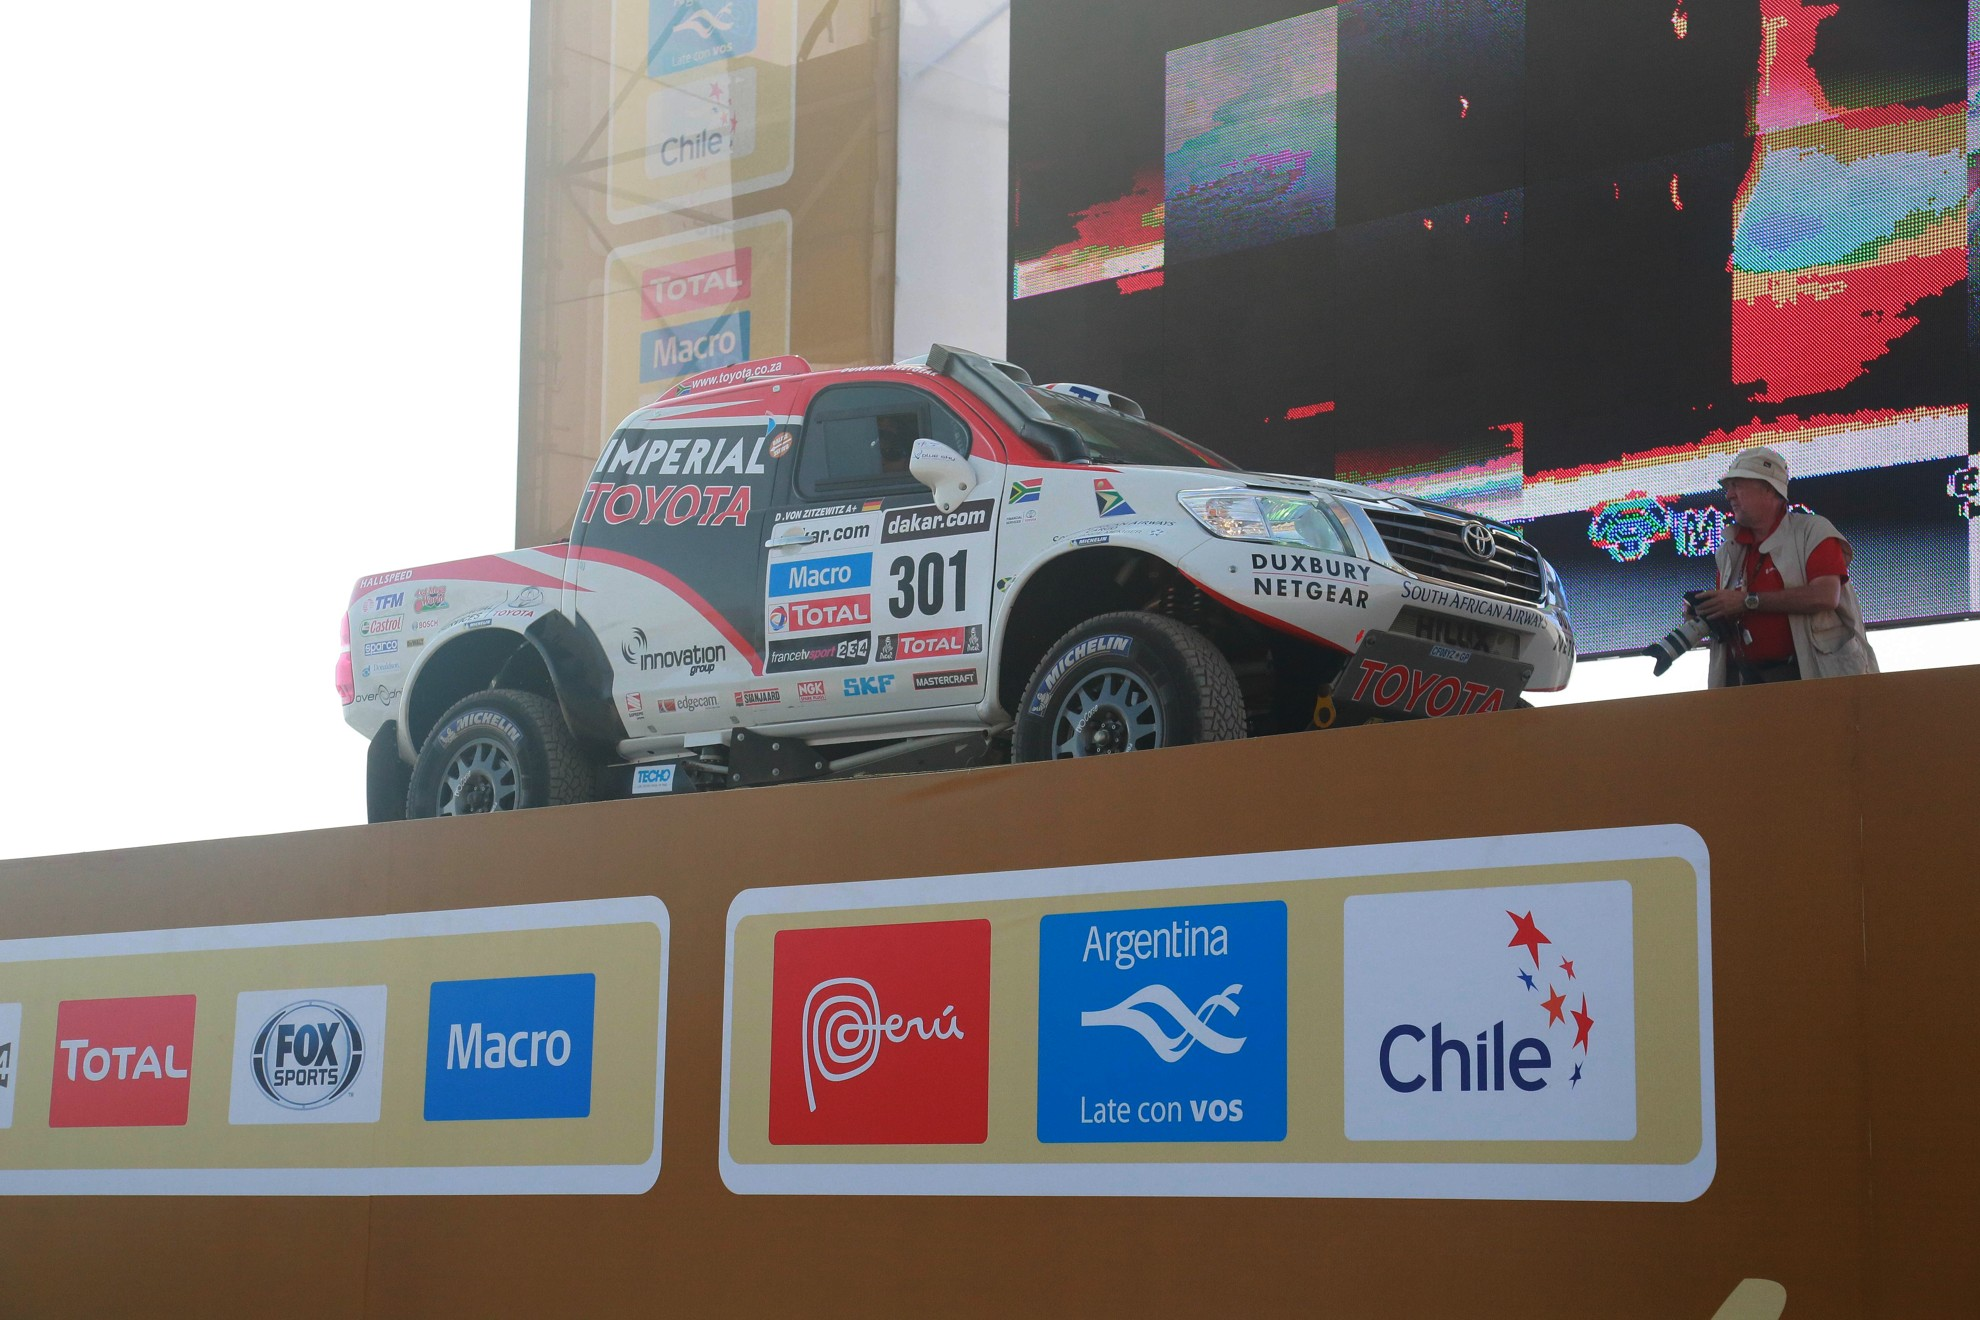 Imperial Toyota Hilux